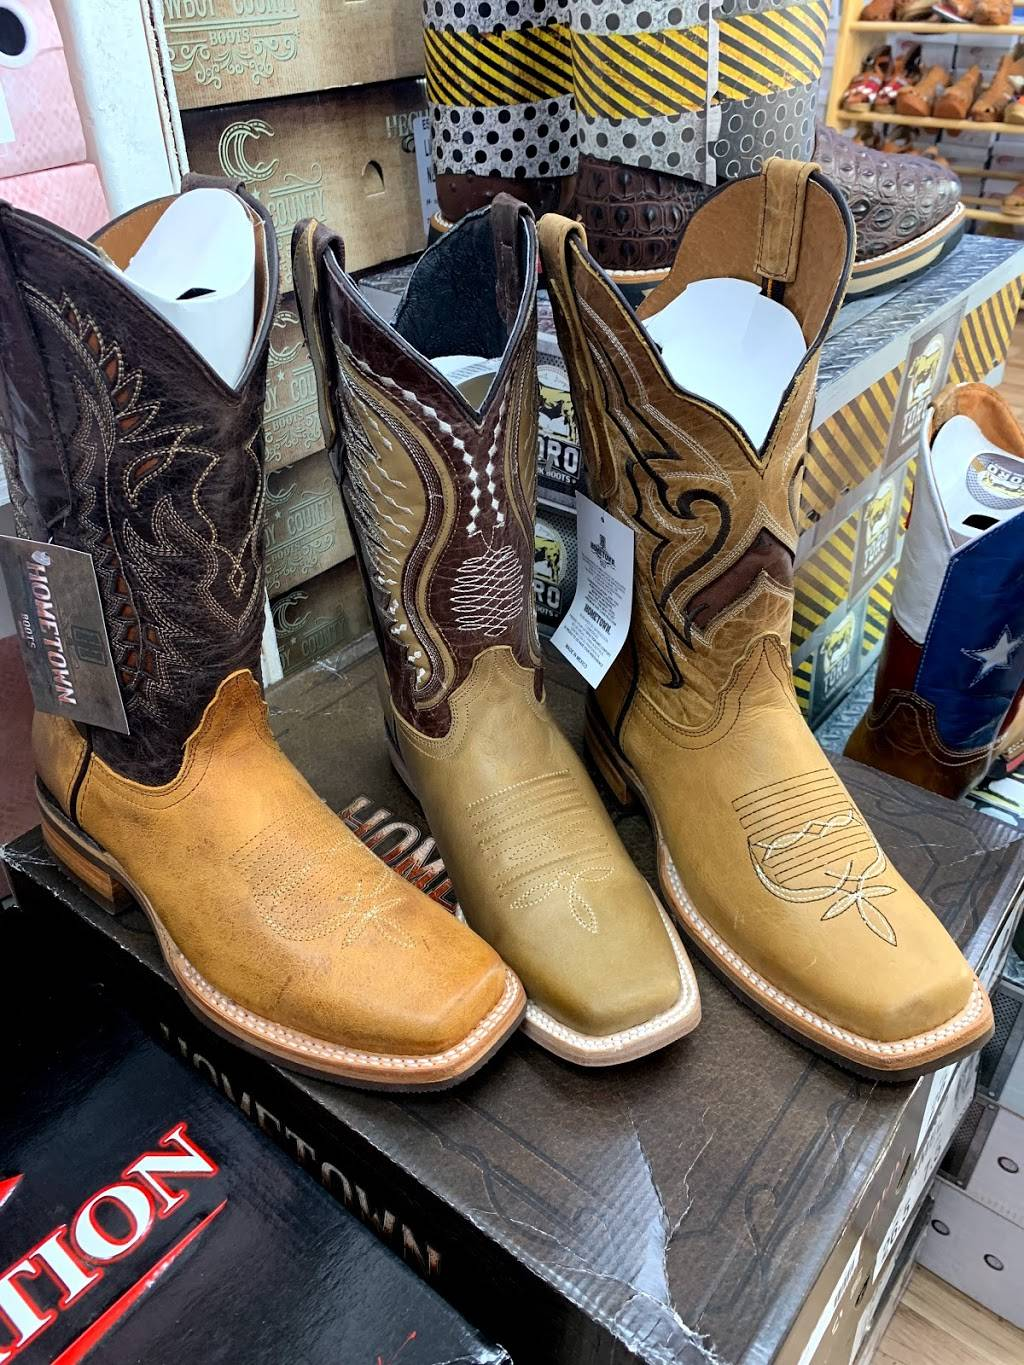 Boots & Shoes 4 You - shoe store    Photo 5 of 9   Address: 4207 W Illinois Ave #100, Dallas, TX 75211, USA   Phone: (469) 941-4043